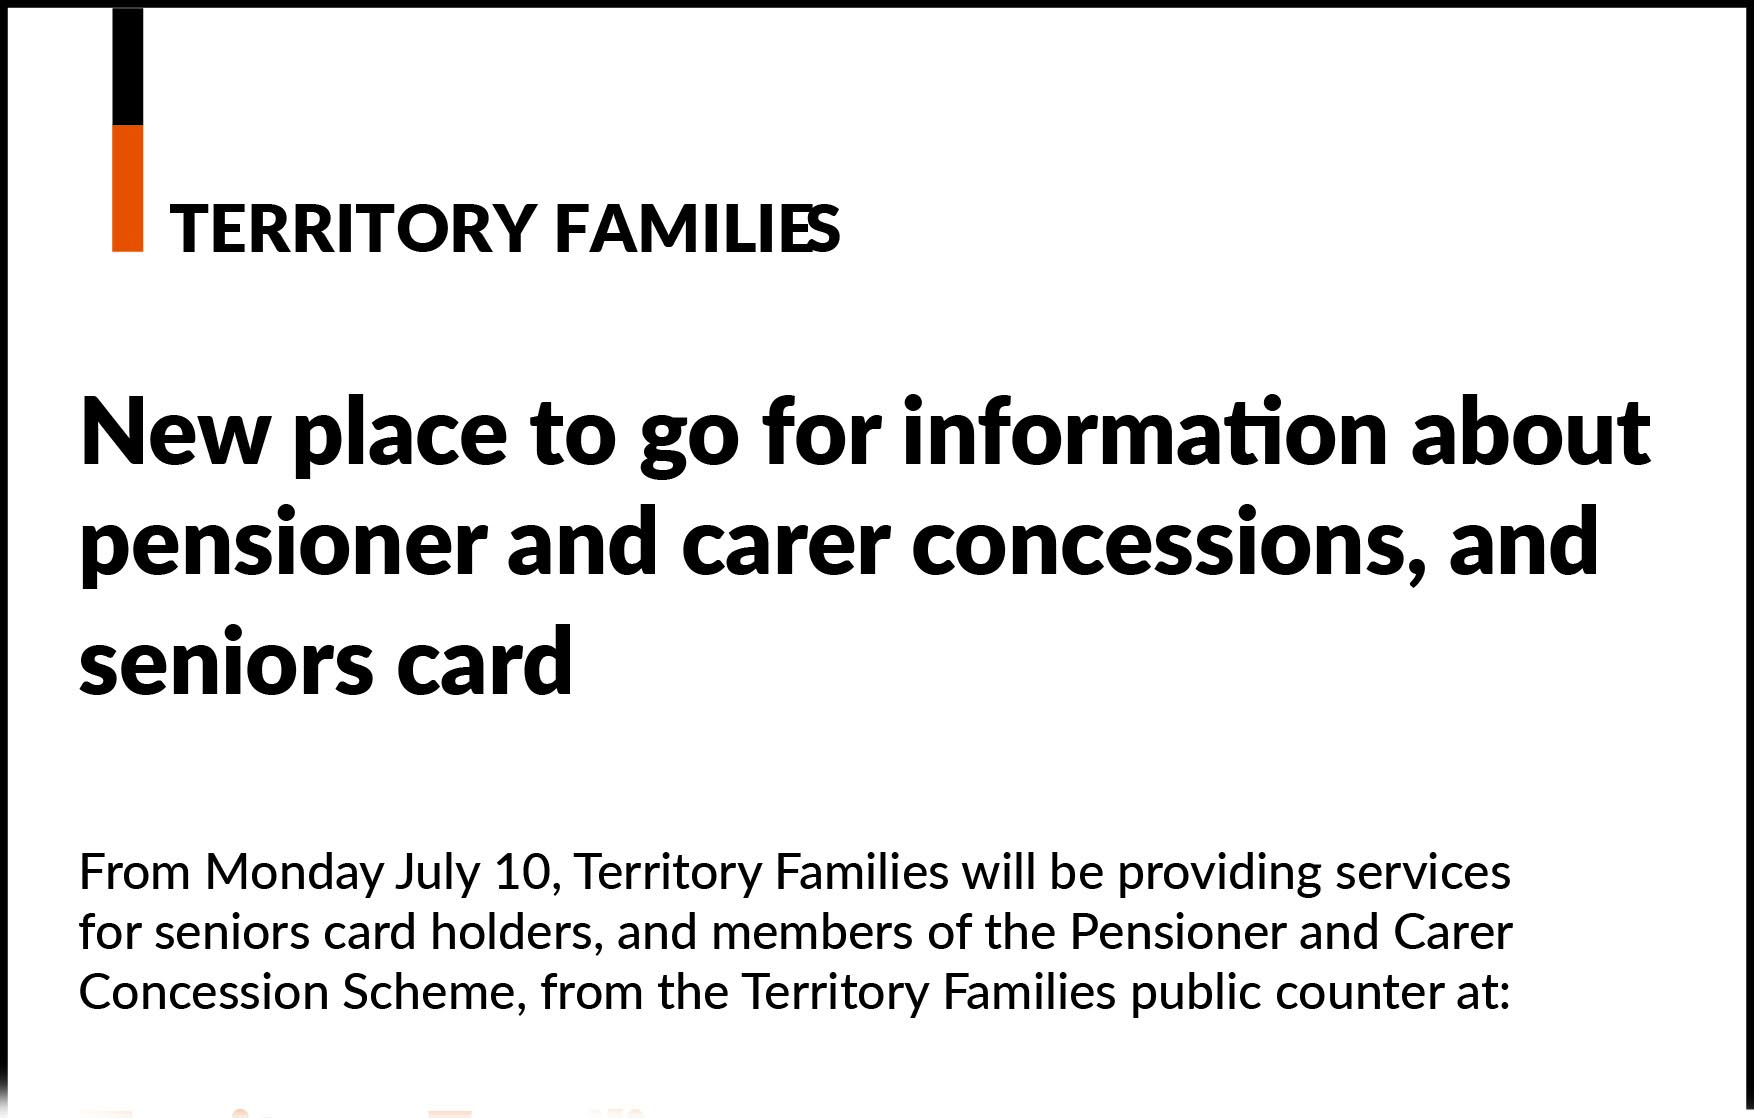 New service locations for seniors card and pensioner and carer concessions